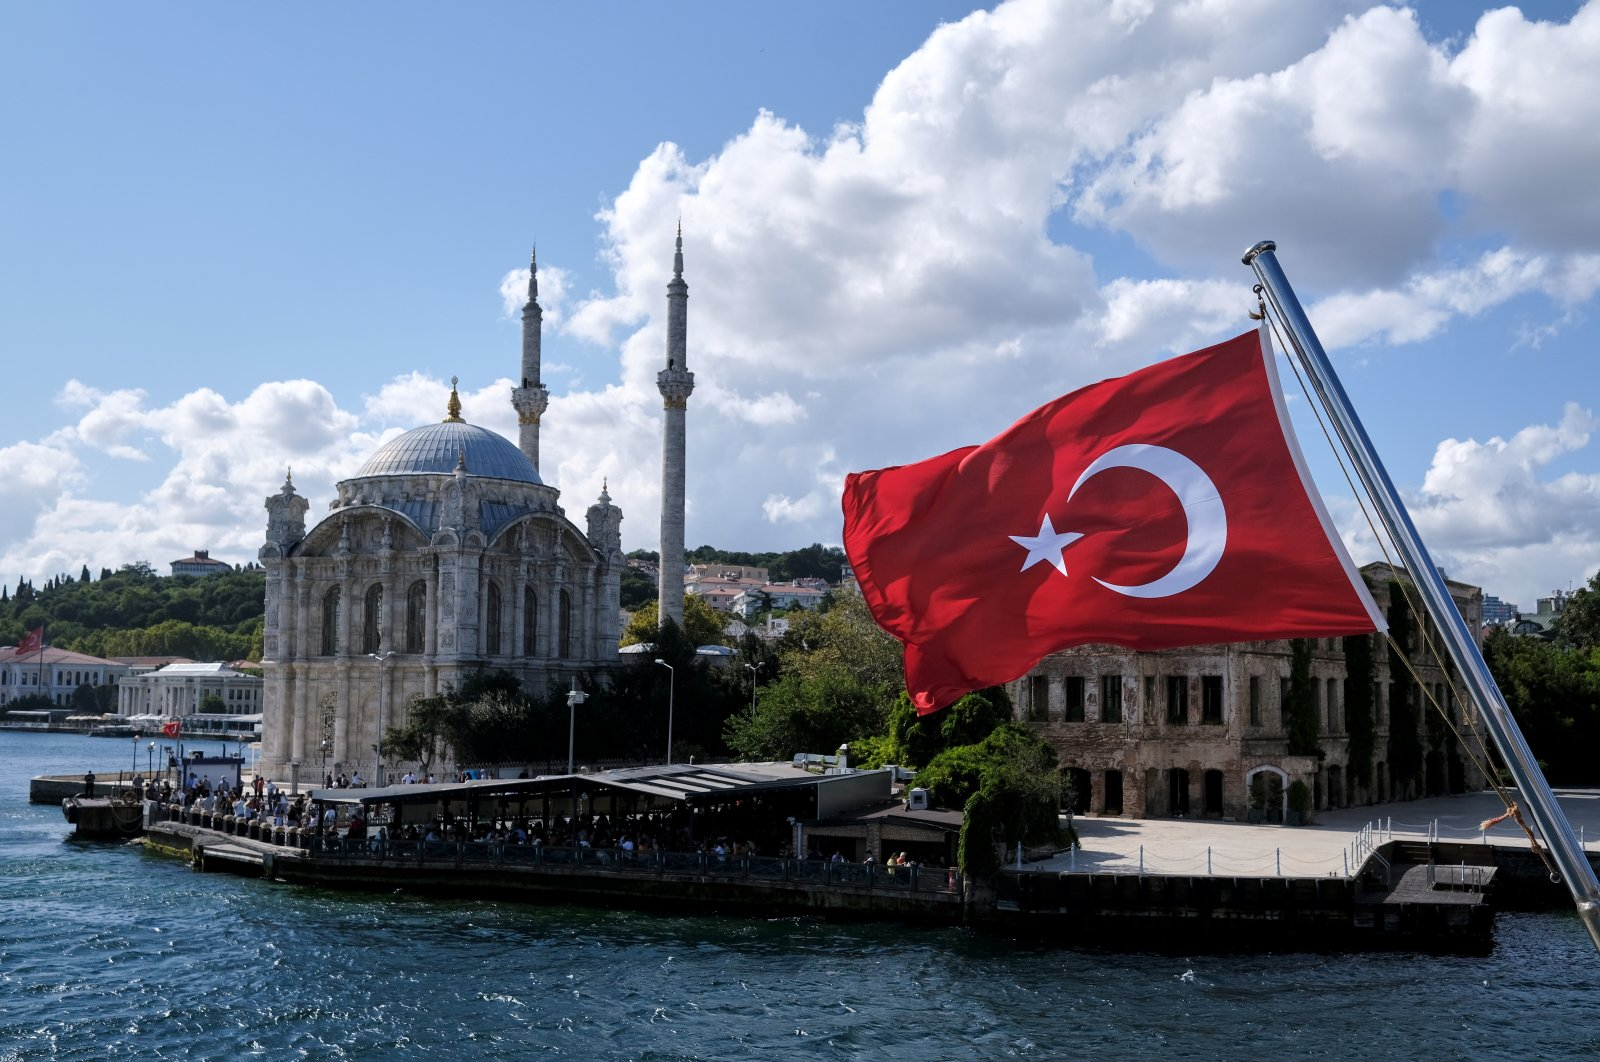 A Turkish flag is pictured on a boat with the Ortaköy Mosque in the background in Istanbul, Turkey, Sept. 5, 2021. (Reuters Photo)